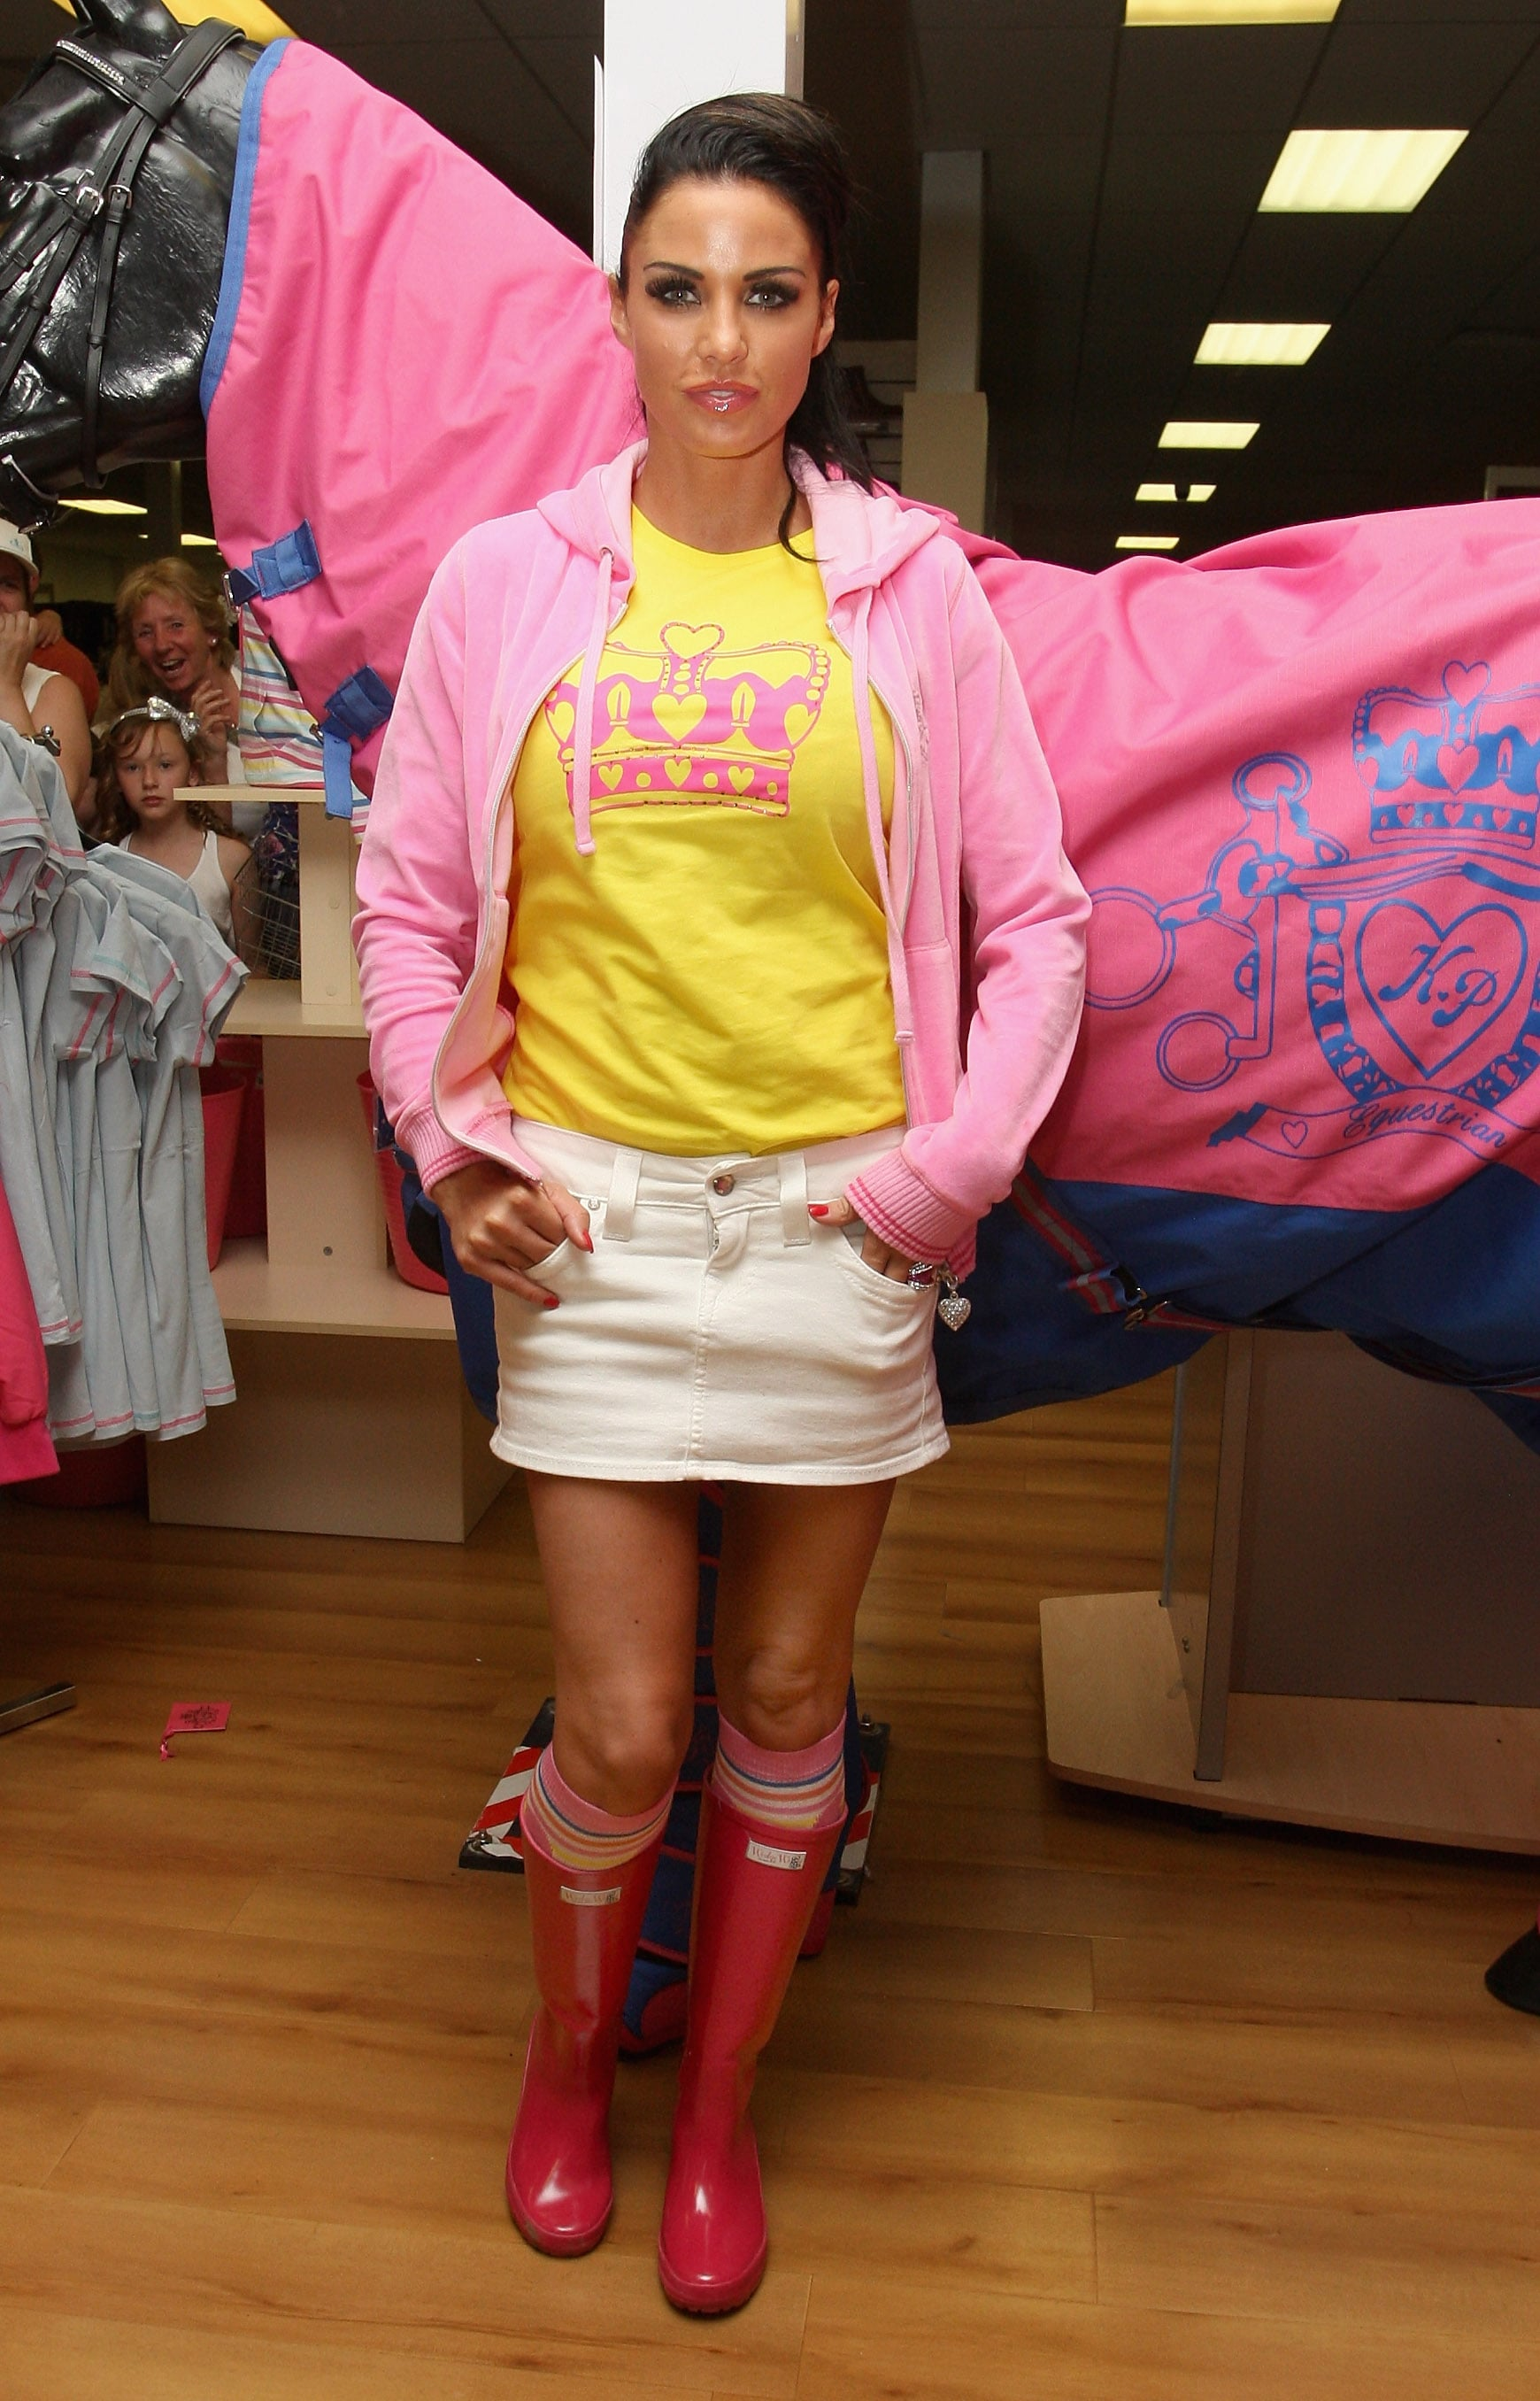 Pictures of Katie Price at KP Equestrian Signing in Chelmsford and